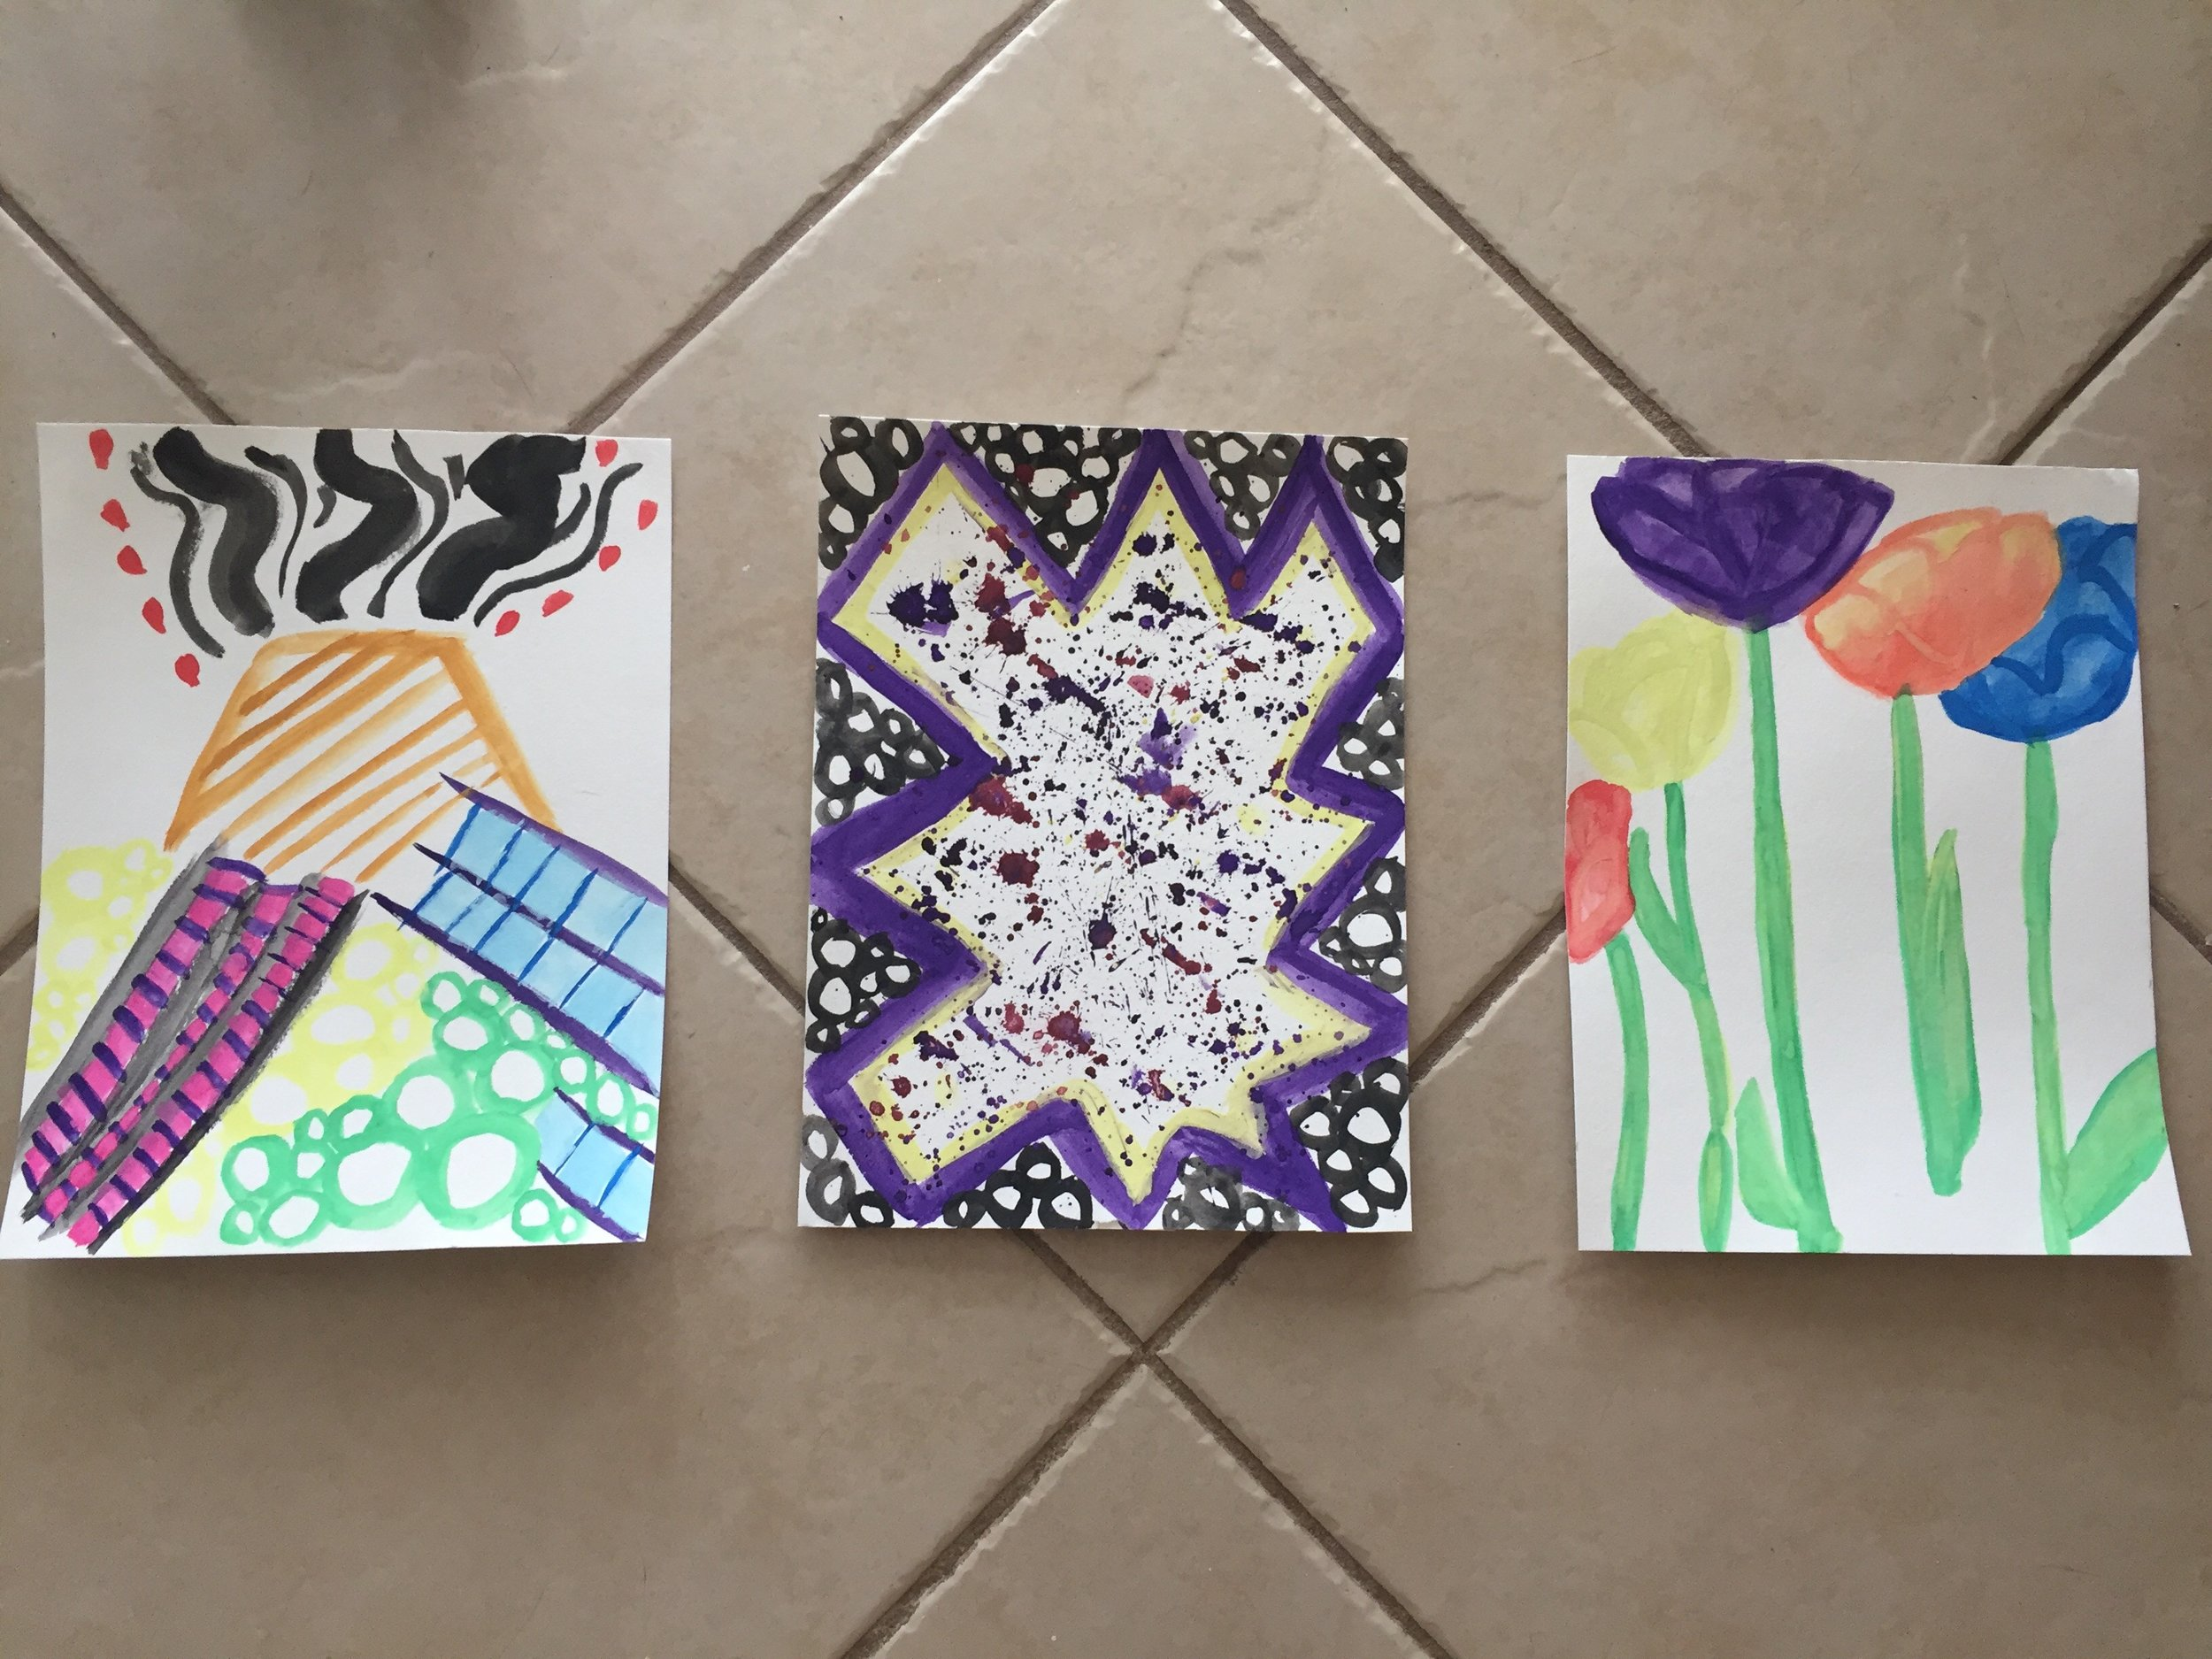 All three of my paintings that are now in Tammi's hands